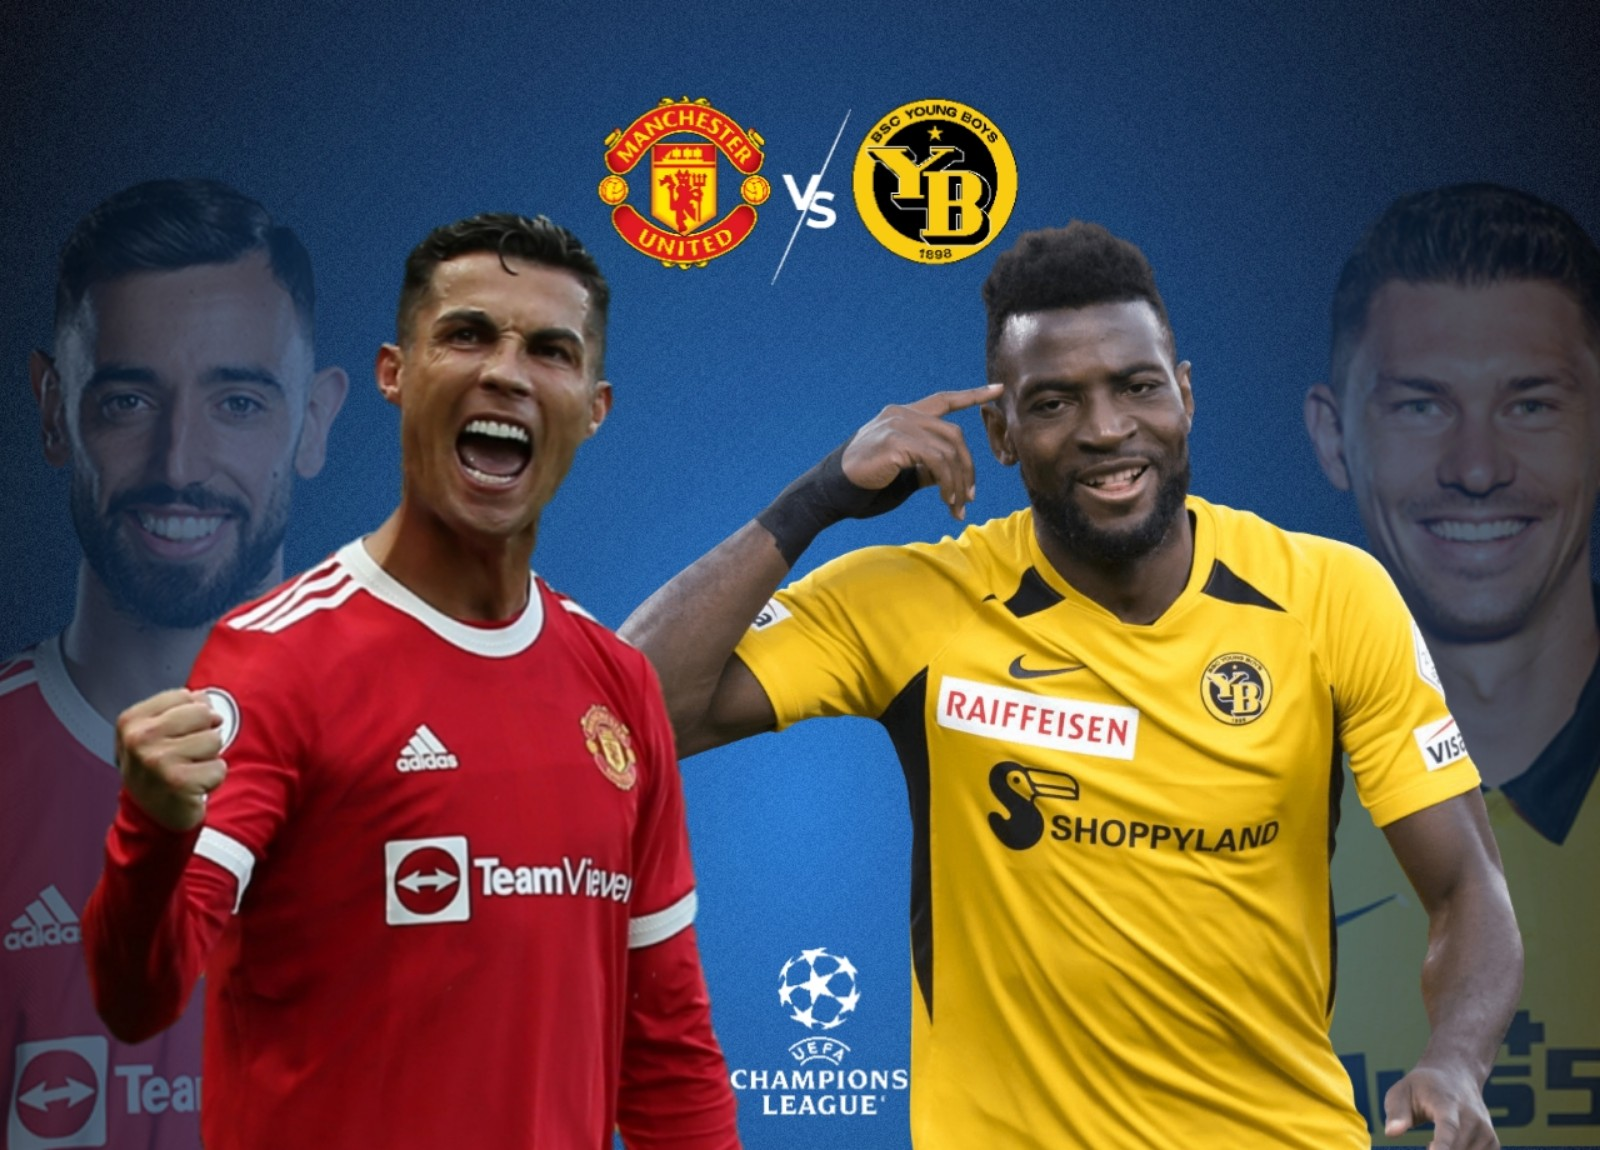 Young Boys 2-1 Manchester United 2021.09.14 (18h45) Watch Full Goals Highlight Extended (20 Minutes)